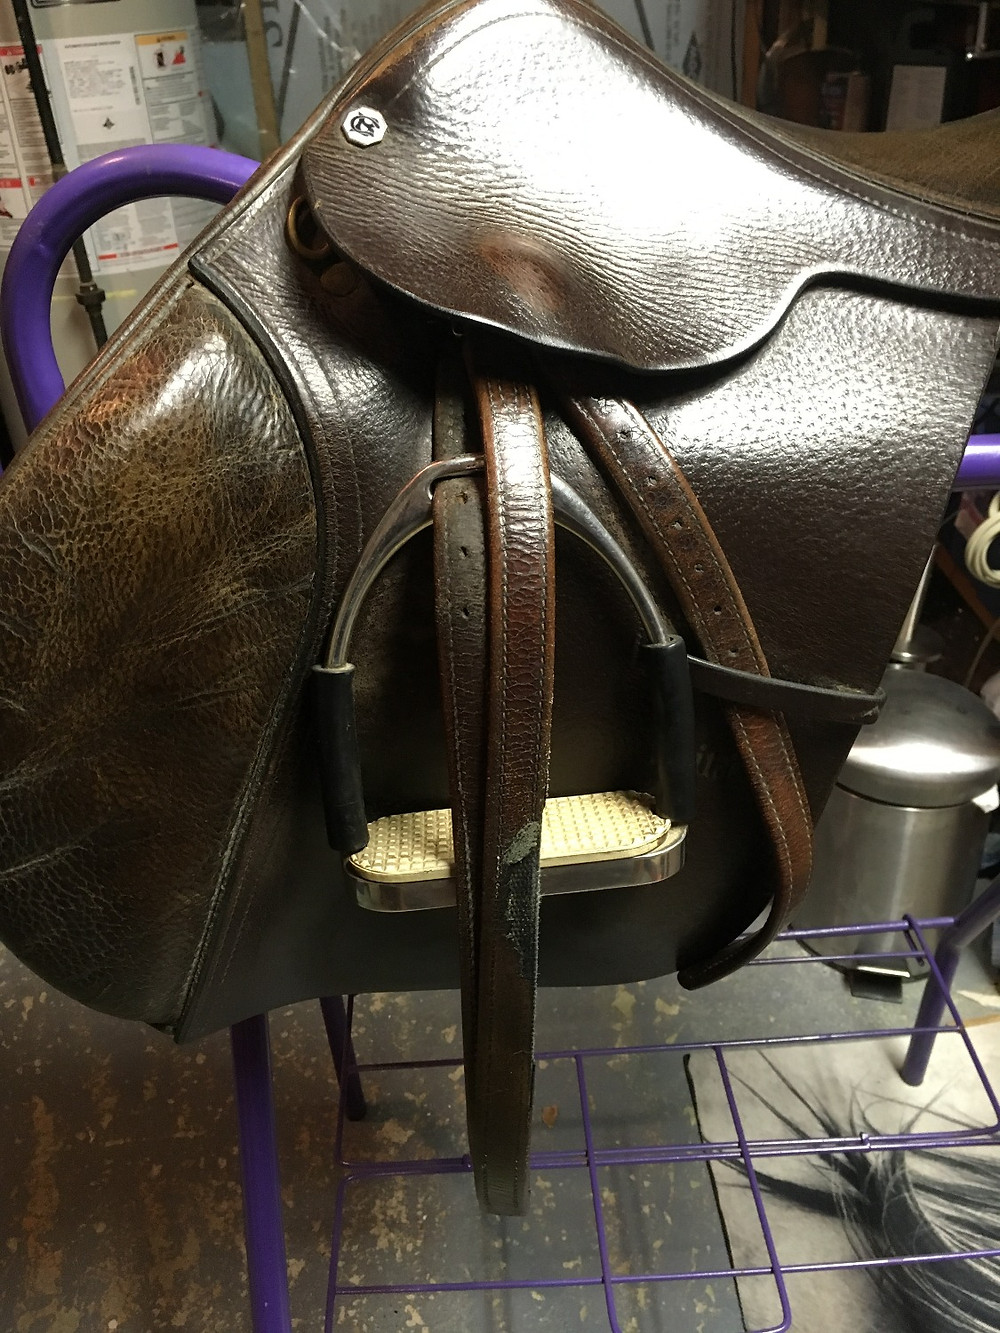 Wow! Those are some rough-looking stirrup leathers